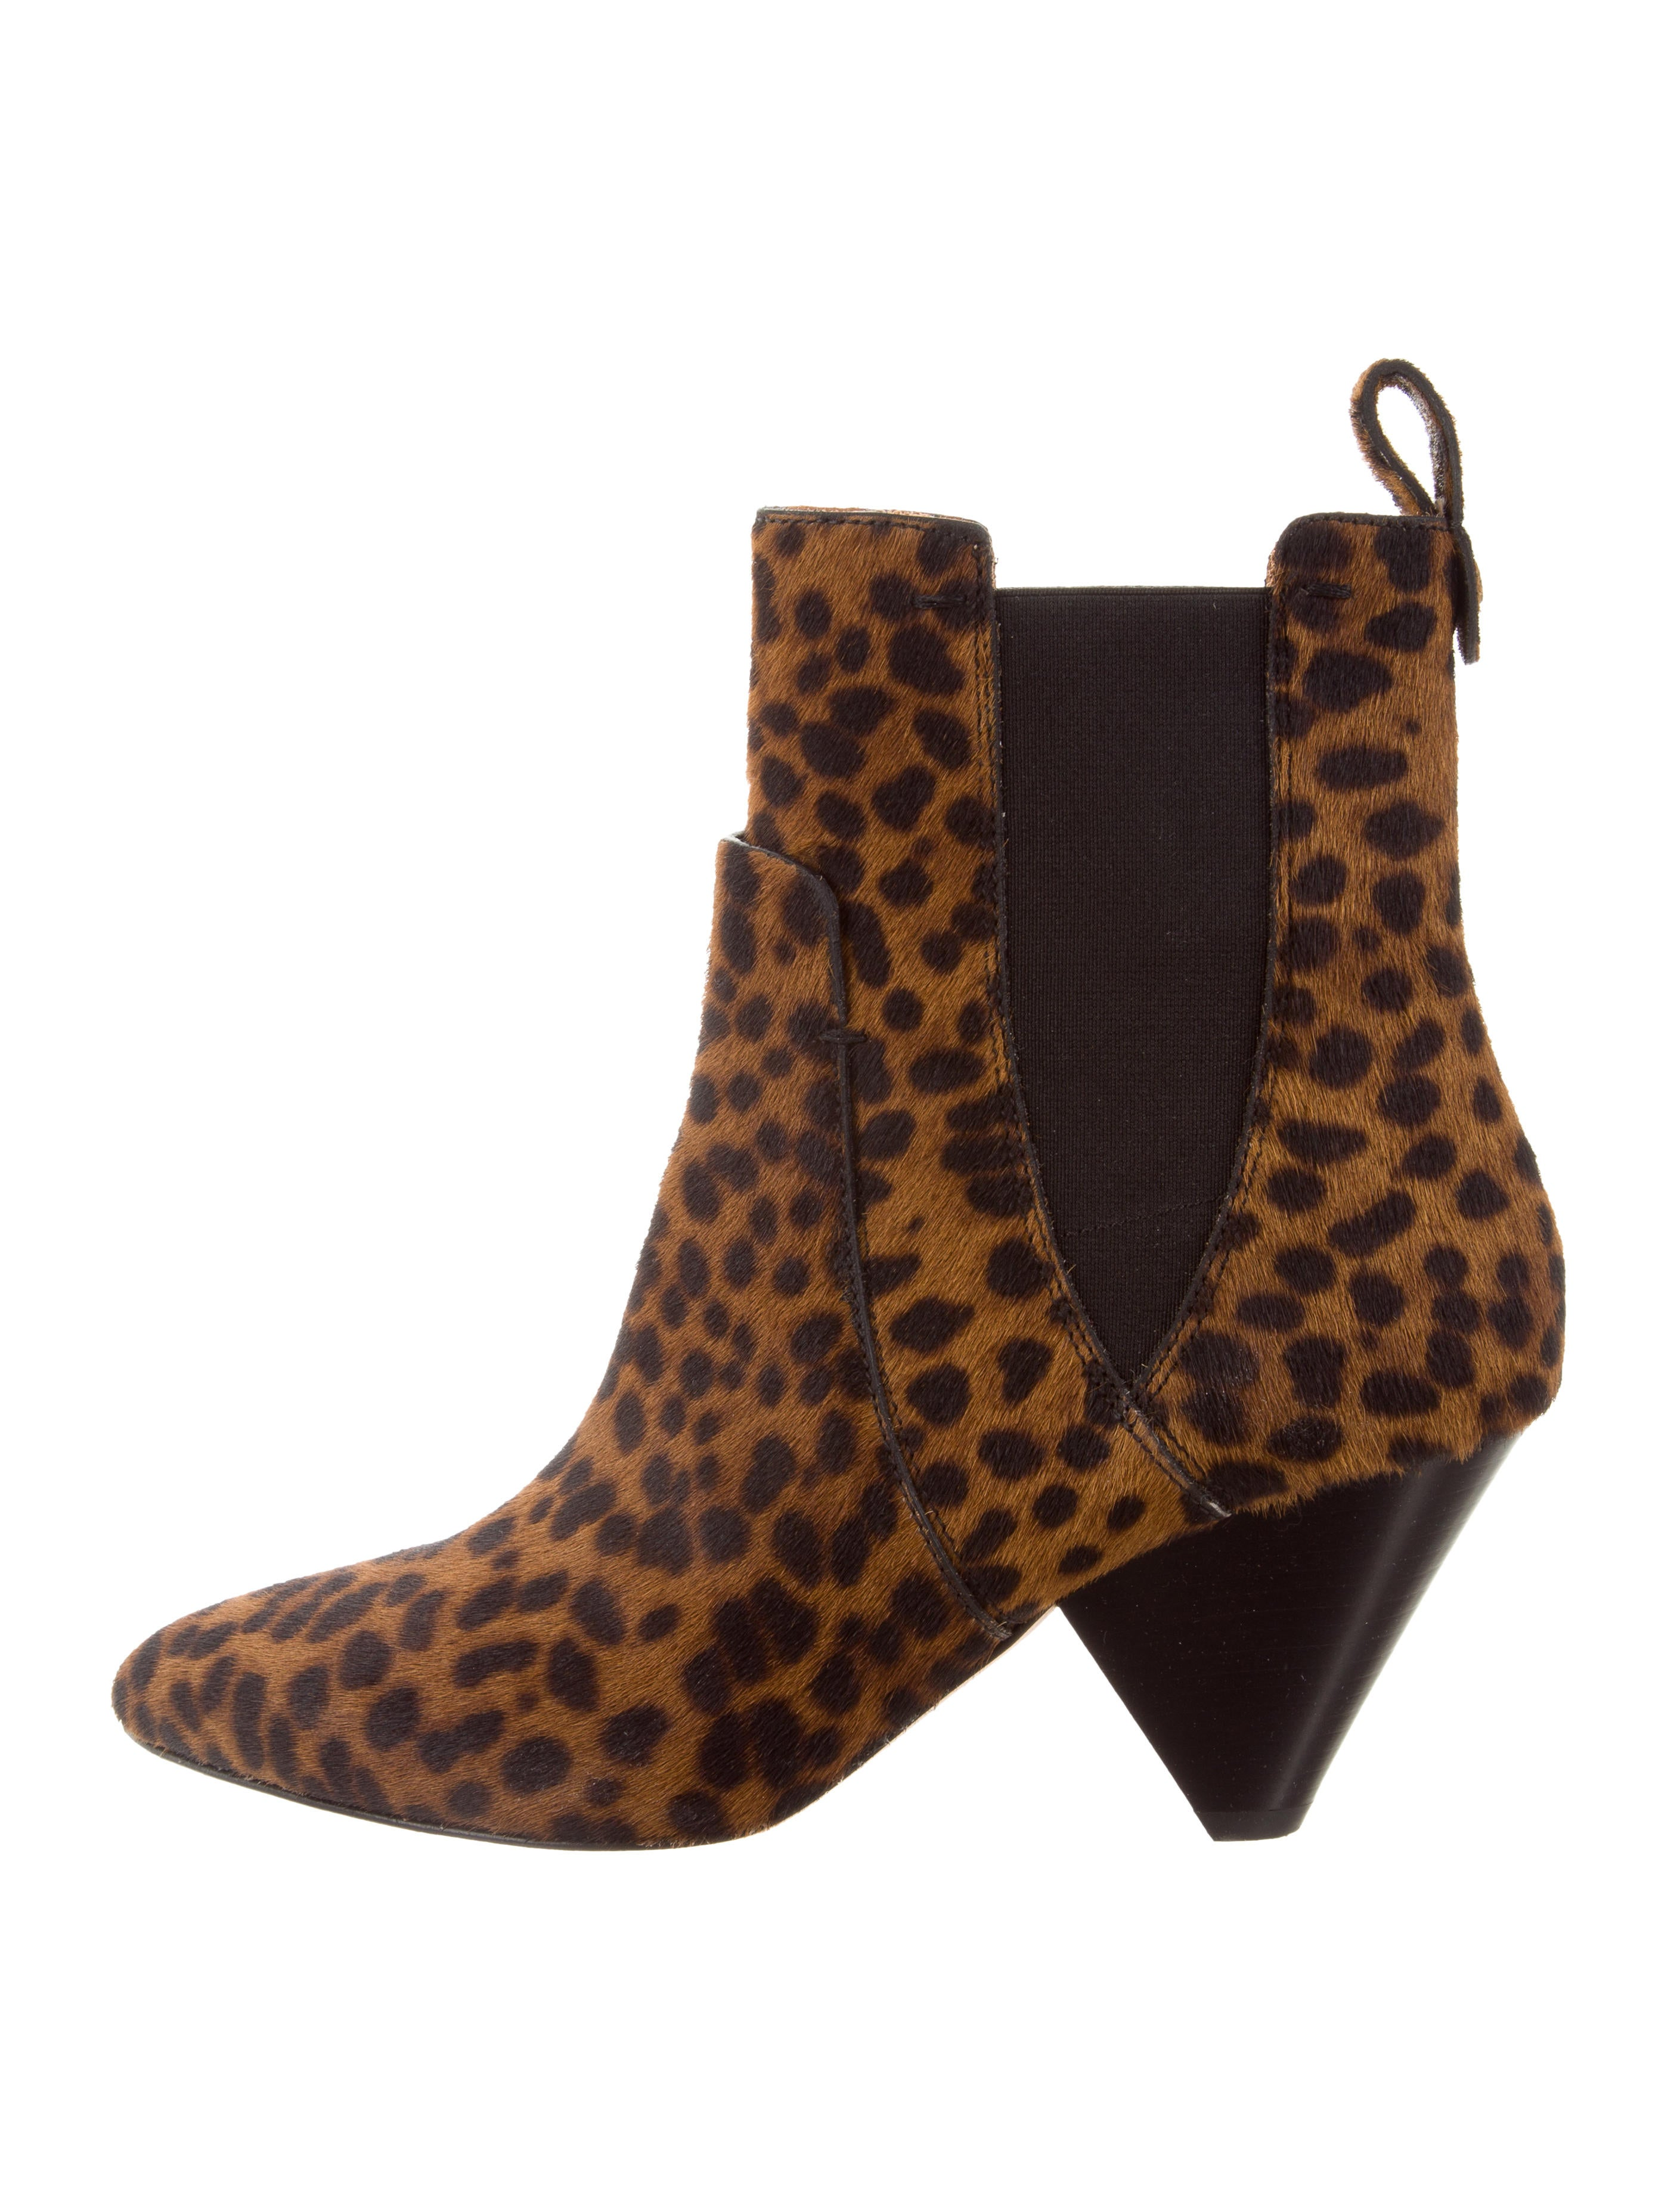 Veronica Beard Ponhair Ankle Boots clearance 2015 new view fashionable cheap online Gpl6LqM